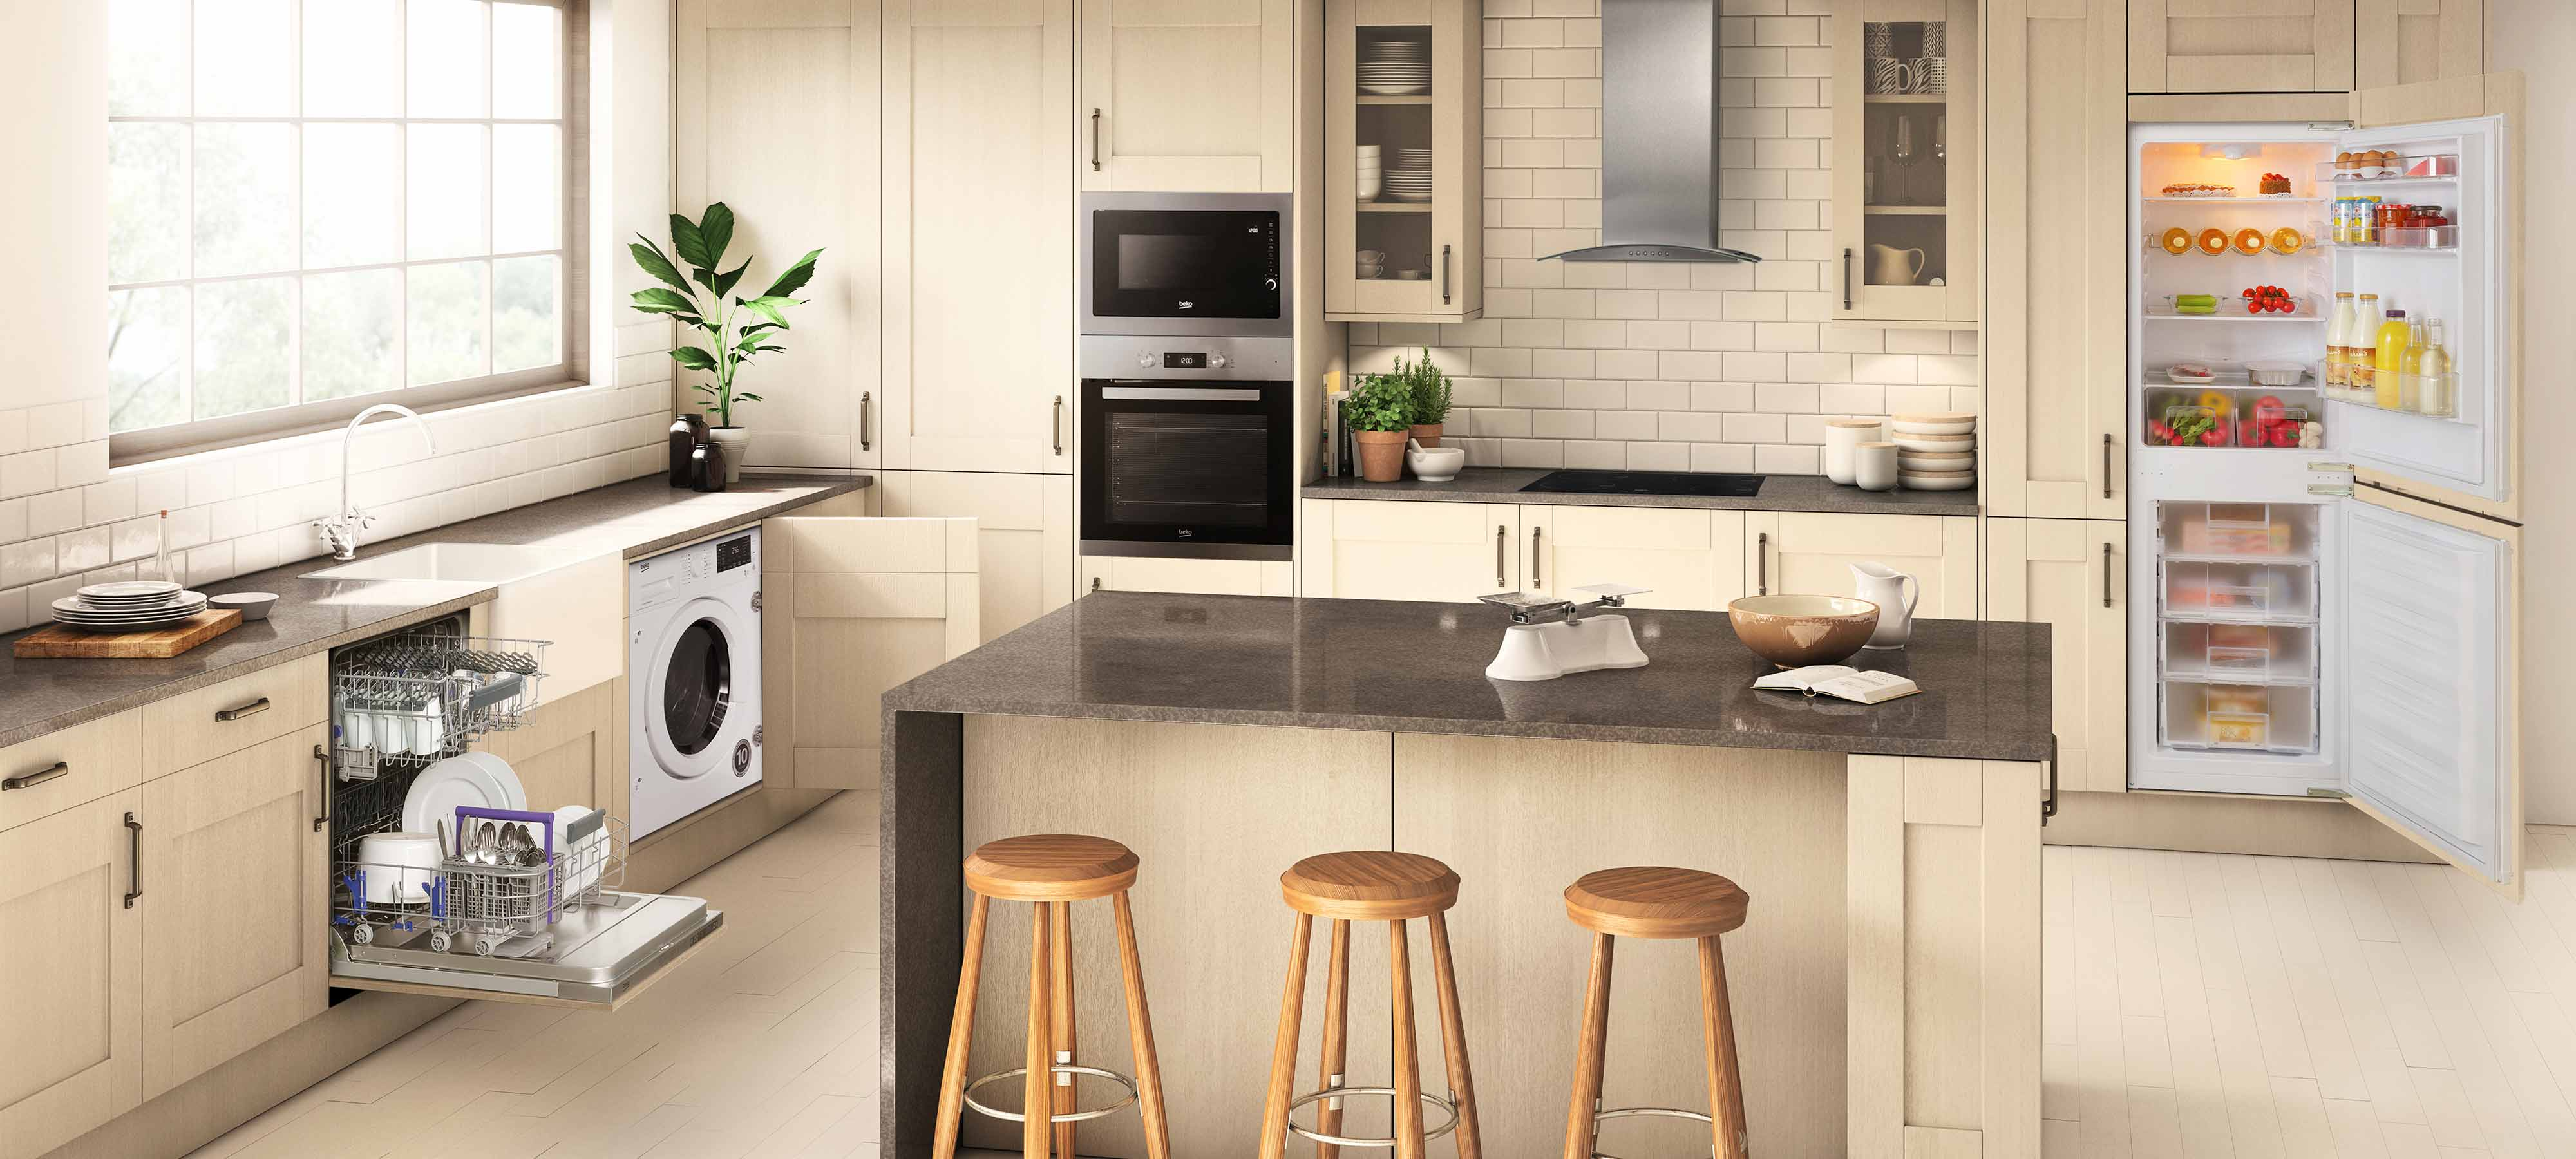 beko built in family kitchens available at ao com beko appliances from ao com  rh   ao com